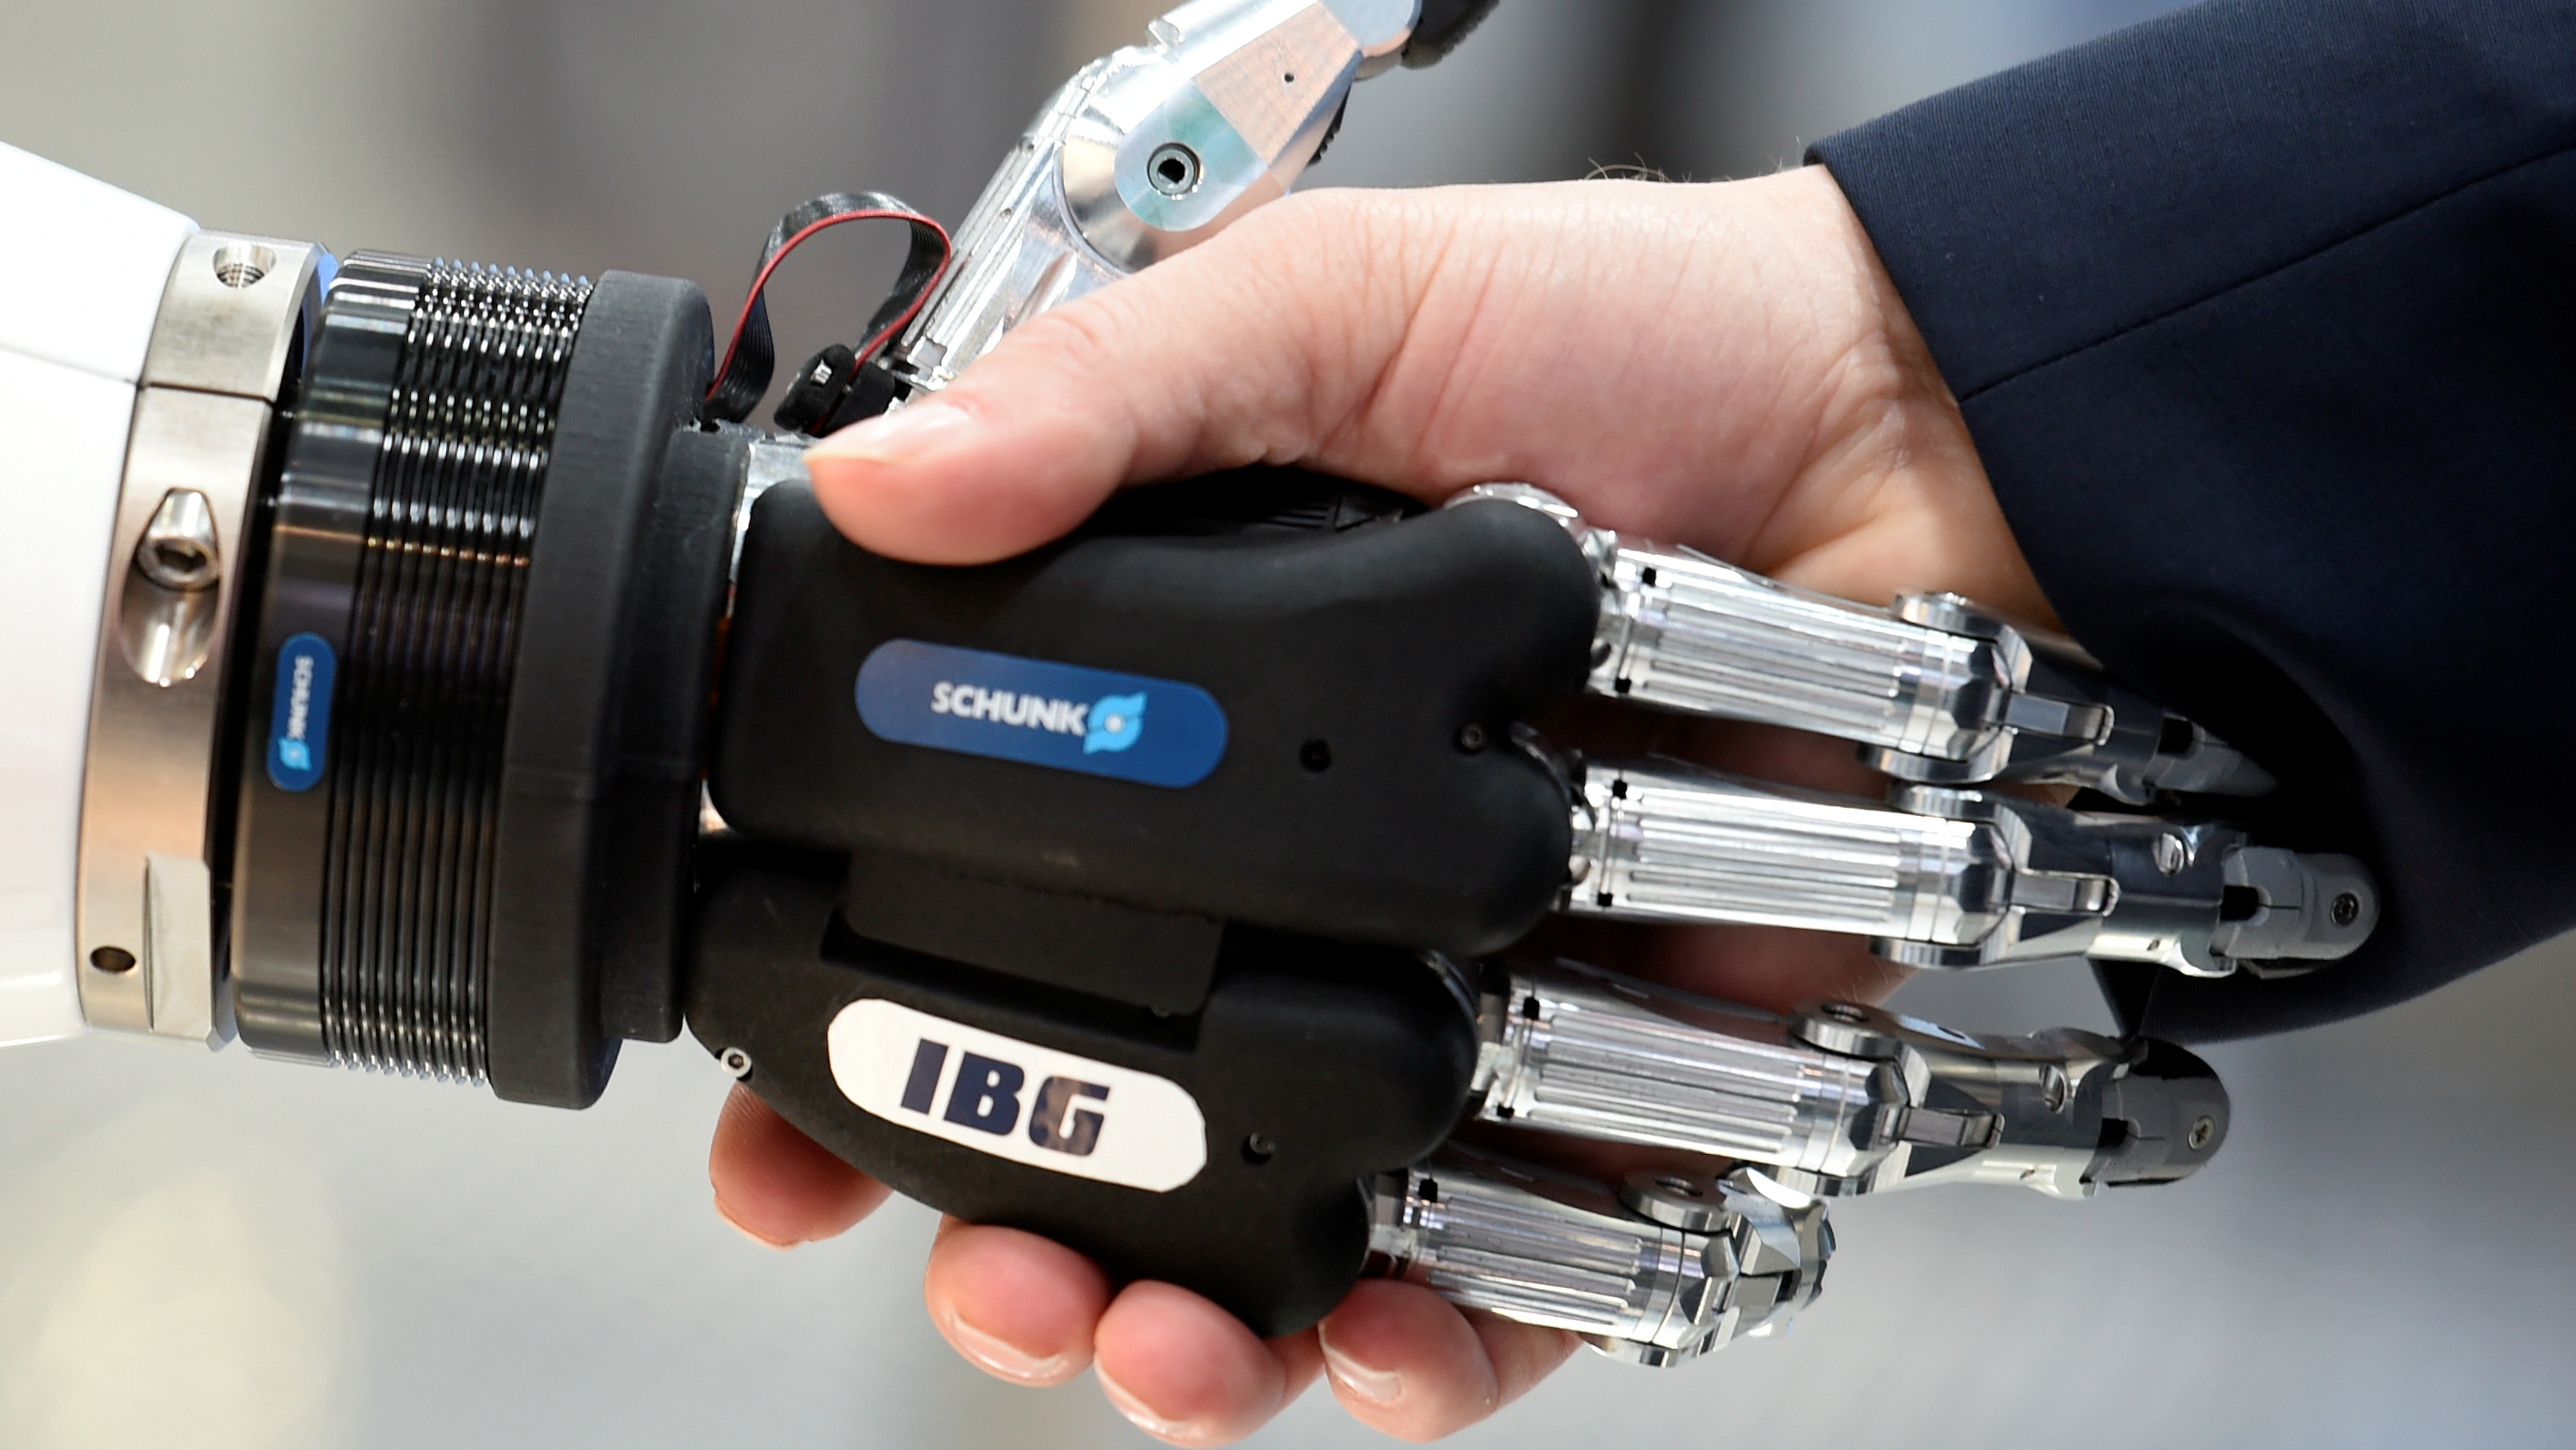 A visitor shakes hands with a humanoid robot.